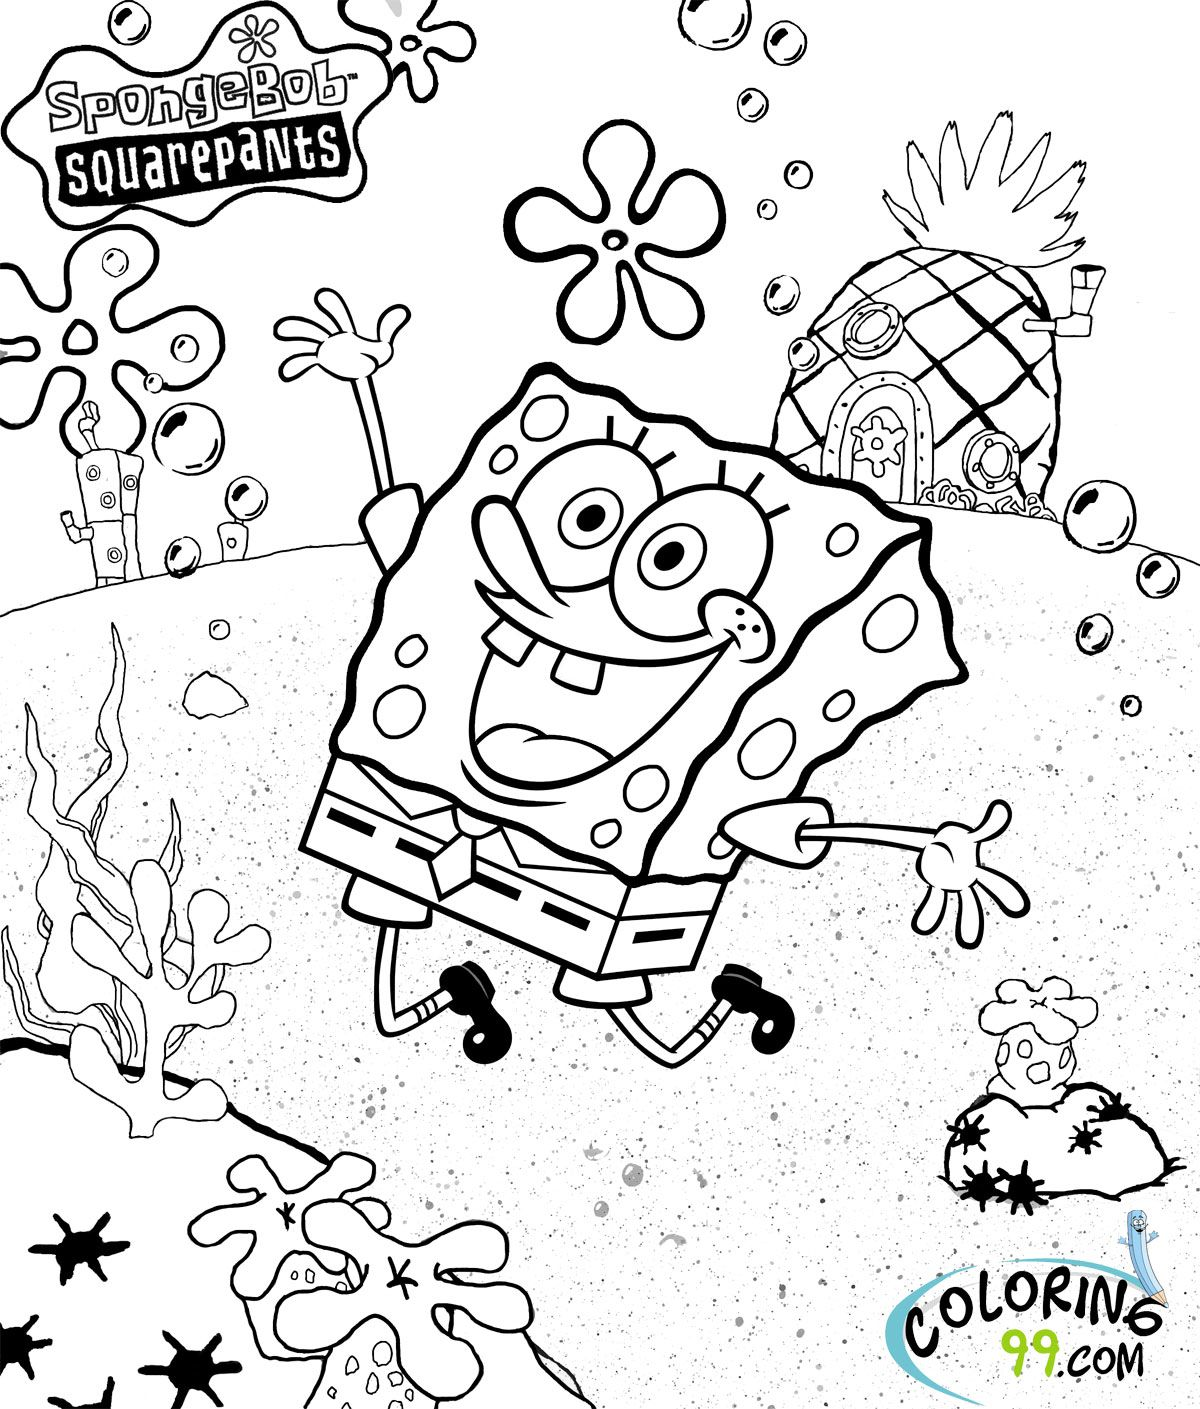 Coloring pages for kids spongebob patrick spongebob coloring Time